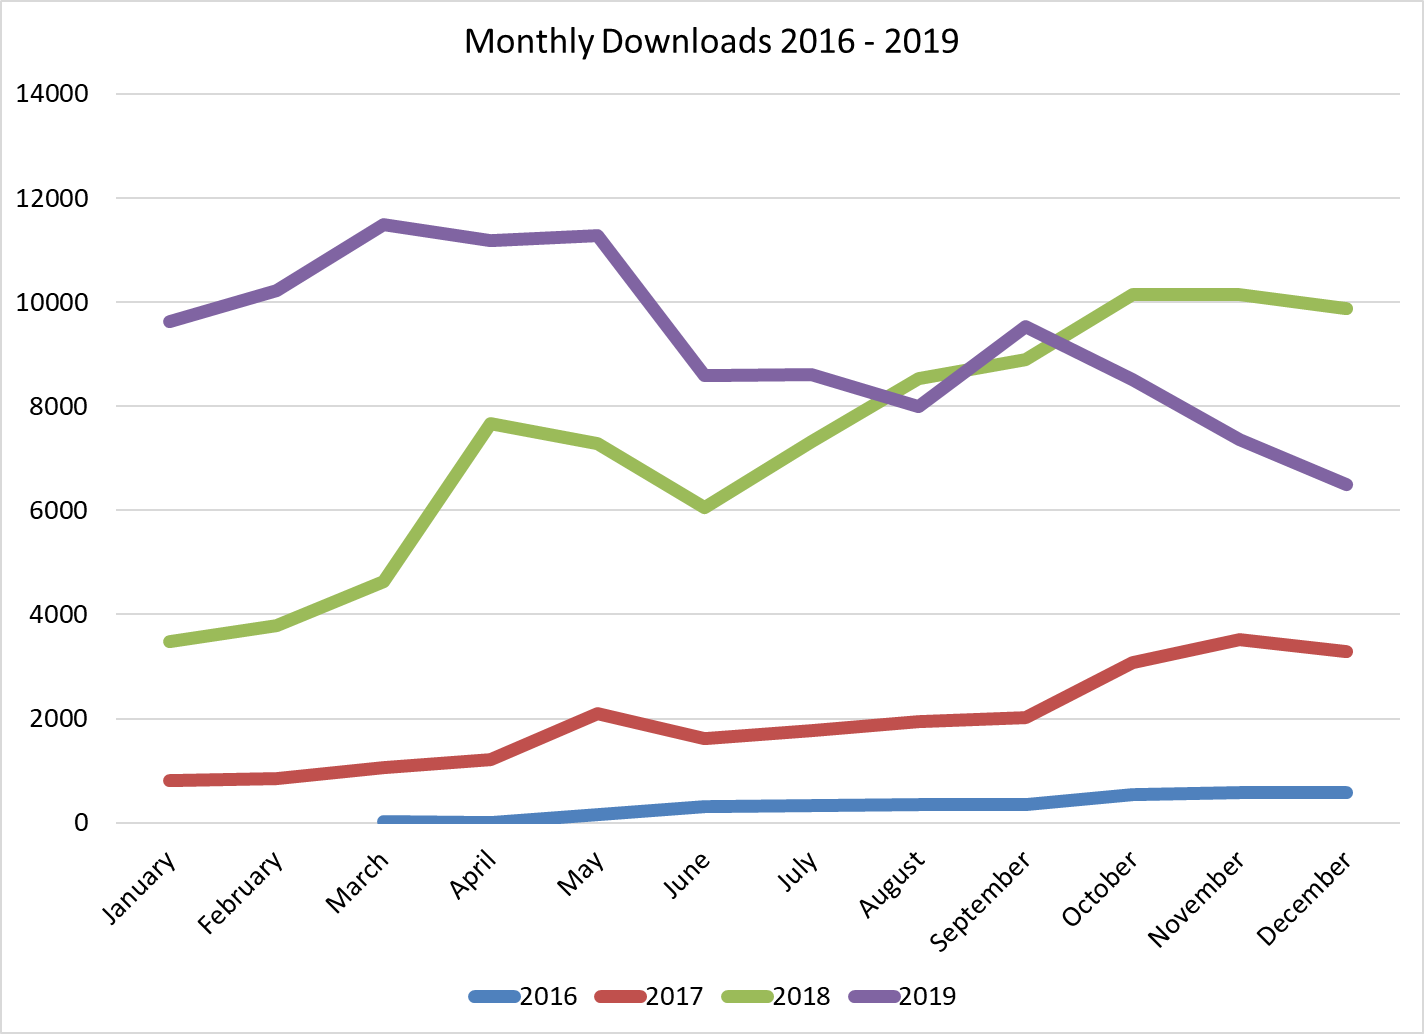 Monthly Downloads 2016 - 2019 line graph